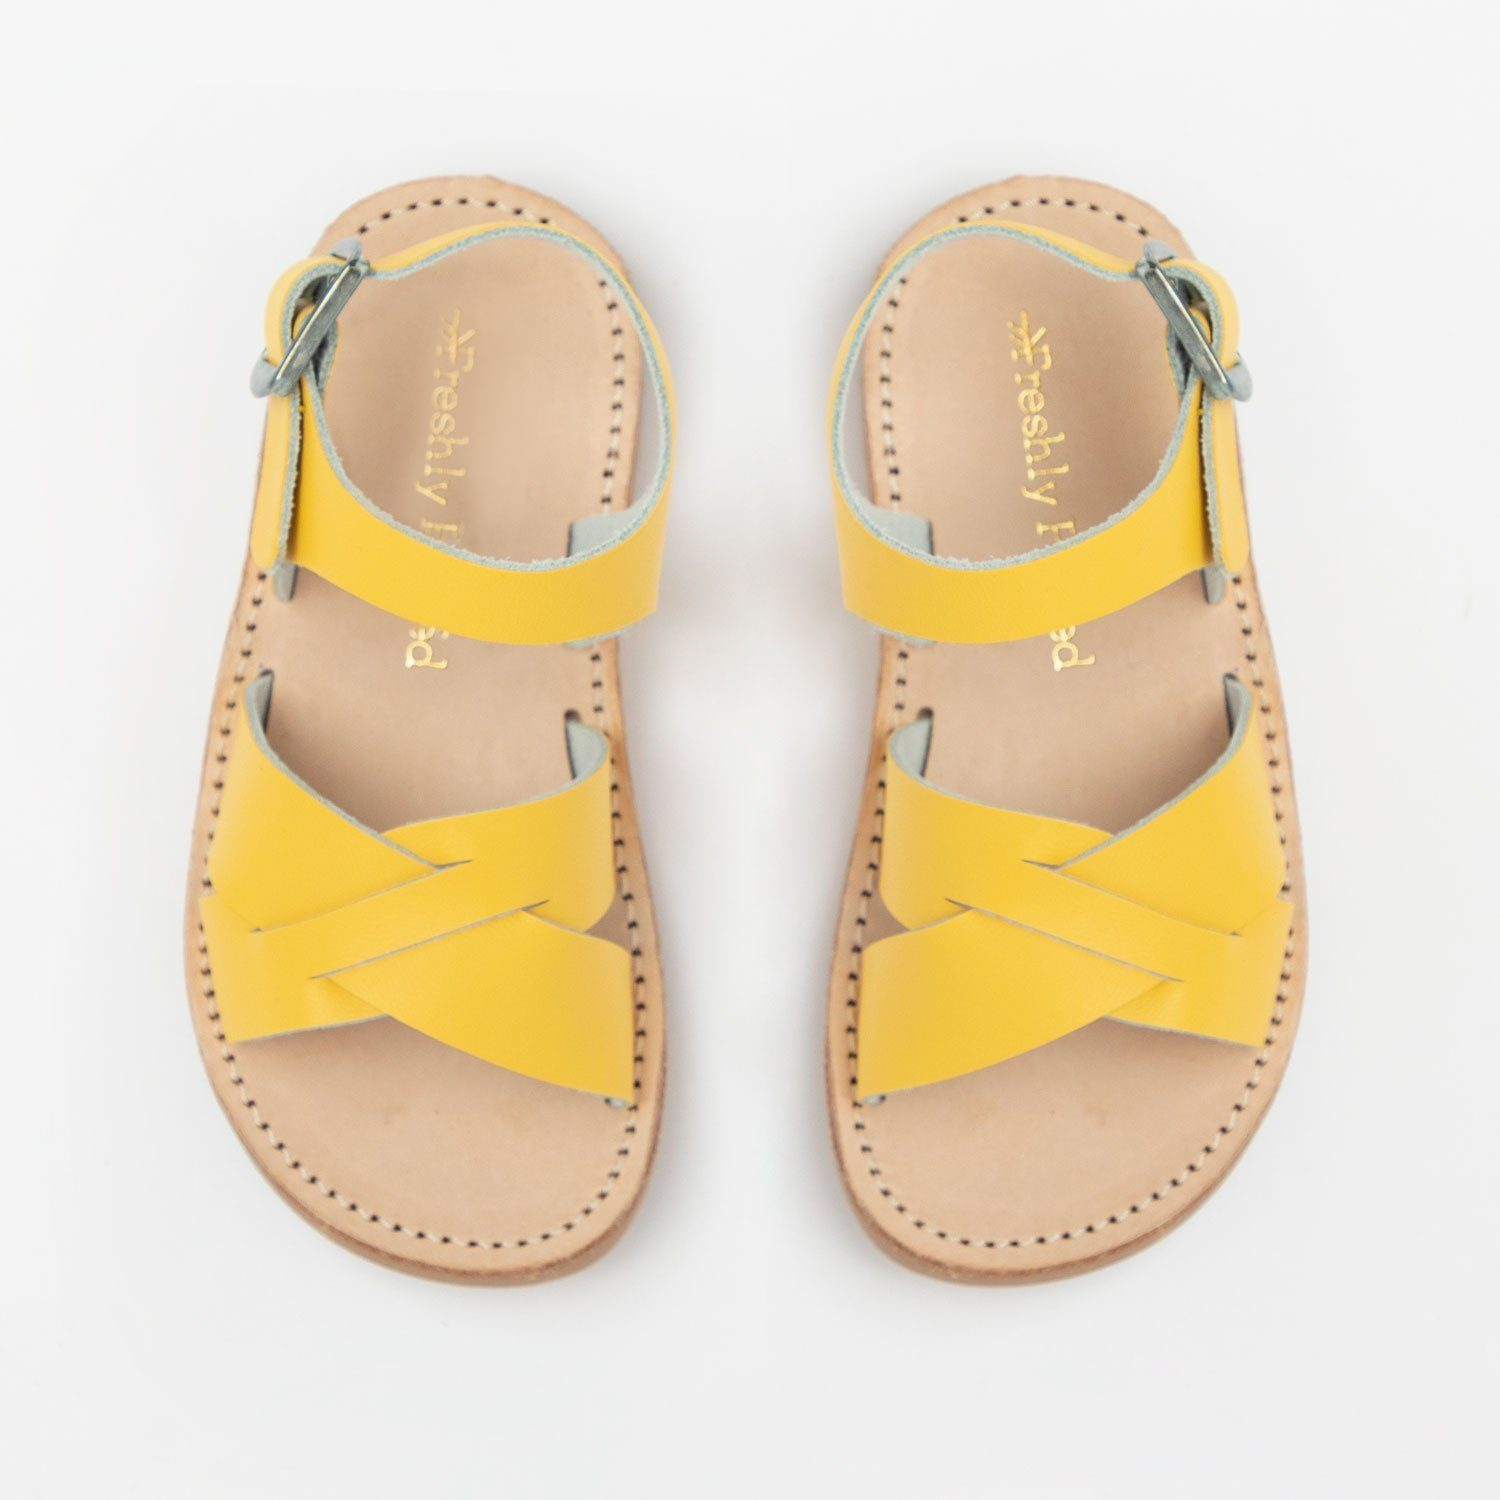 Yellow Saybrook saybrook sandal Kids Sandals